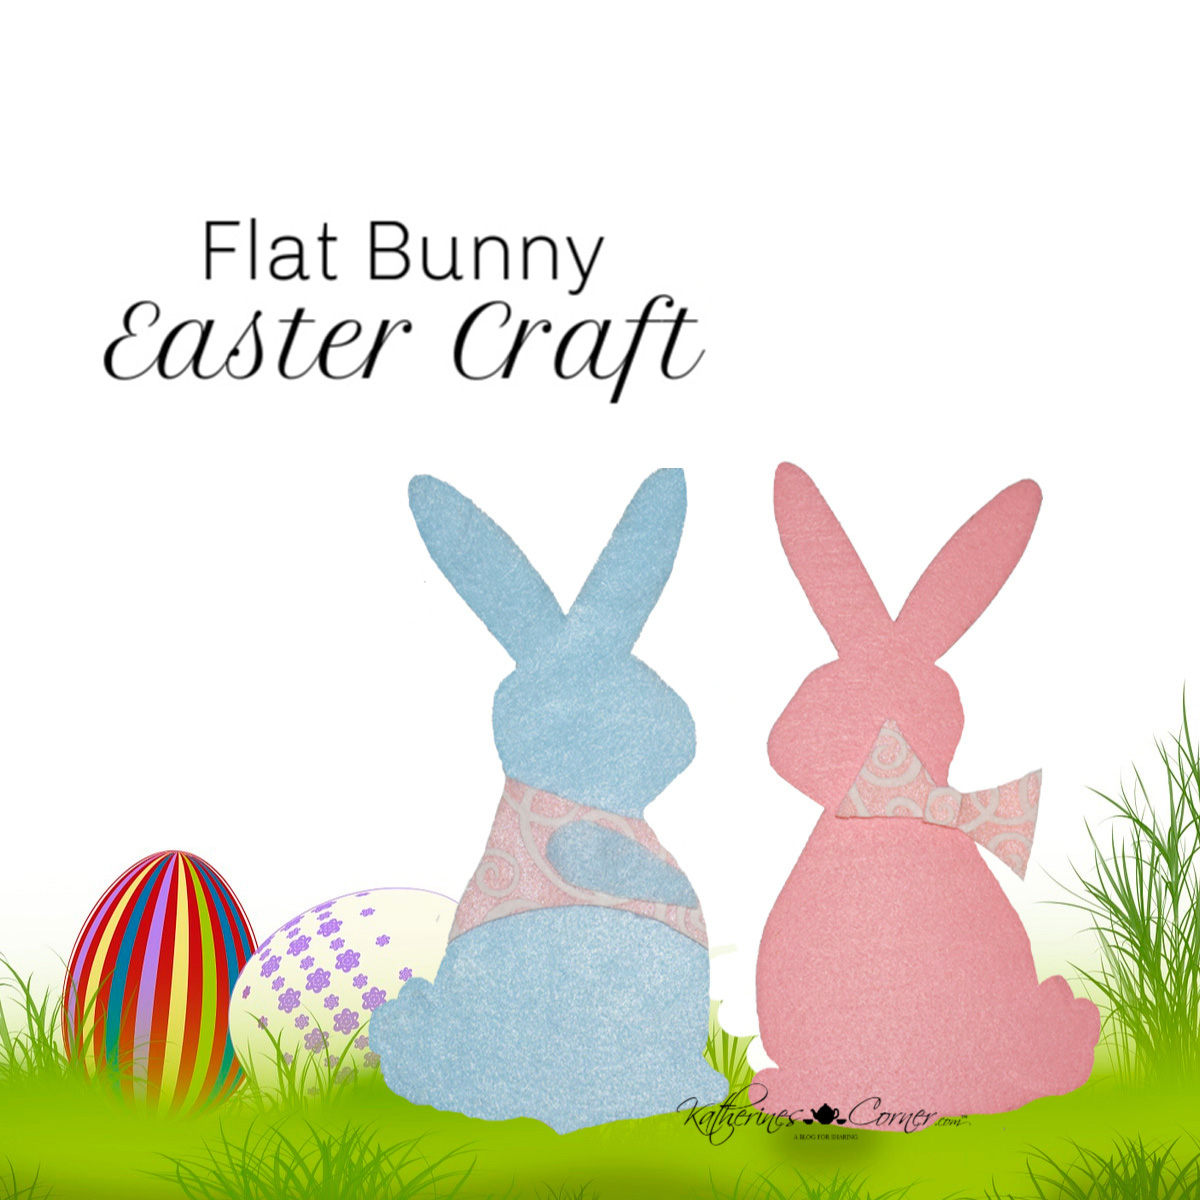 Flat Bunny Easter Craft